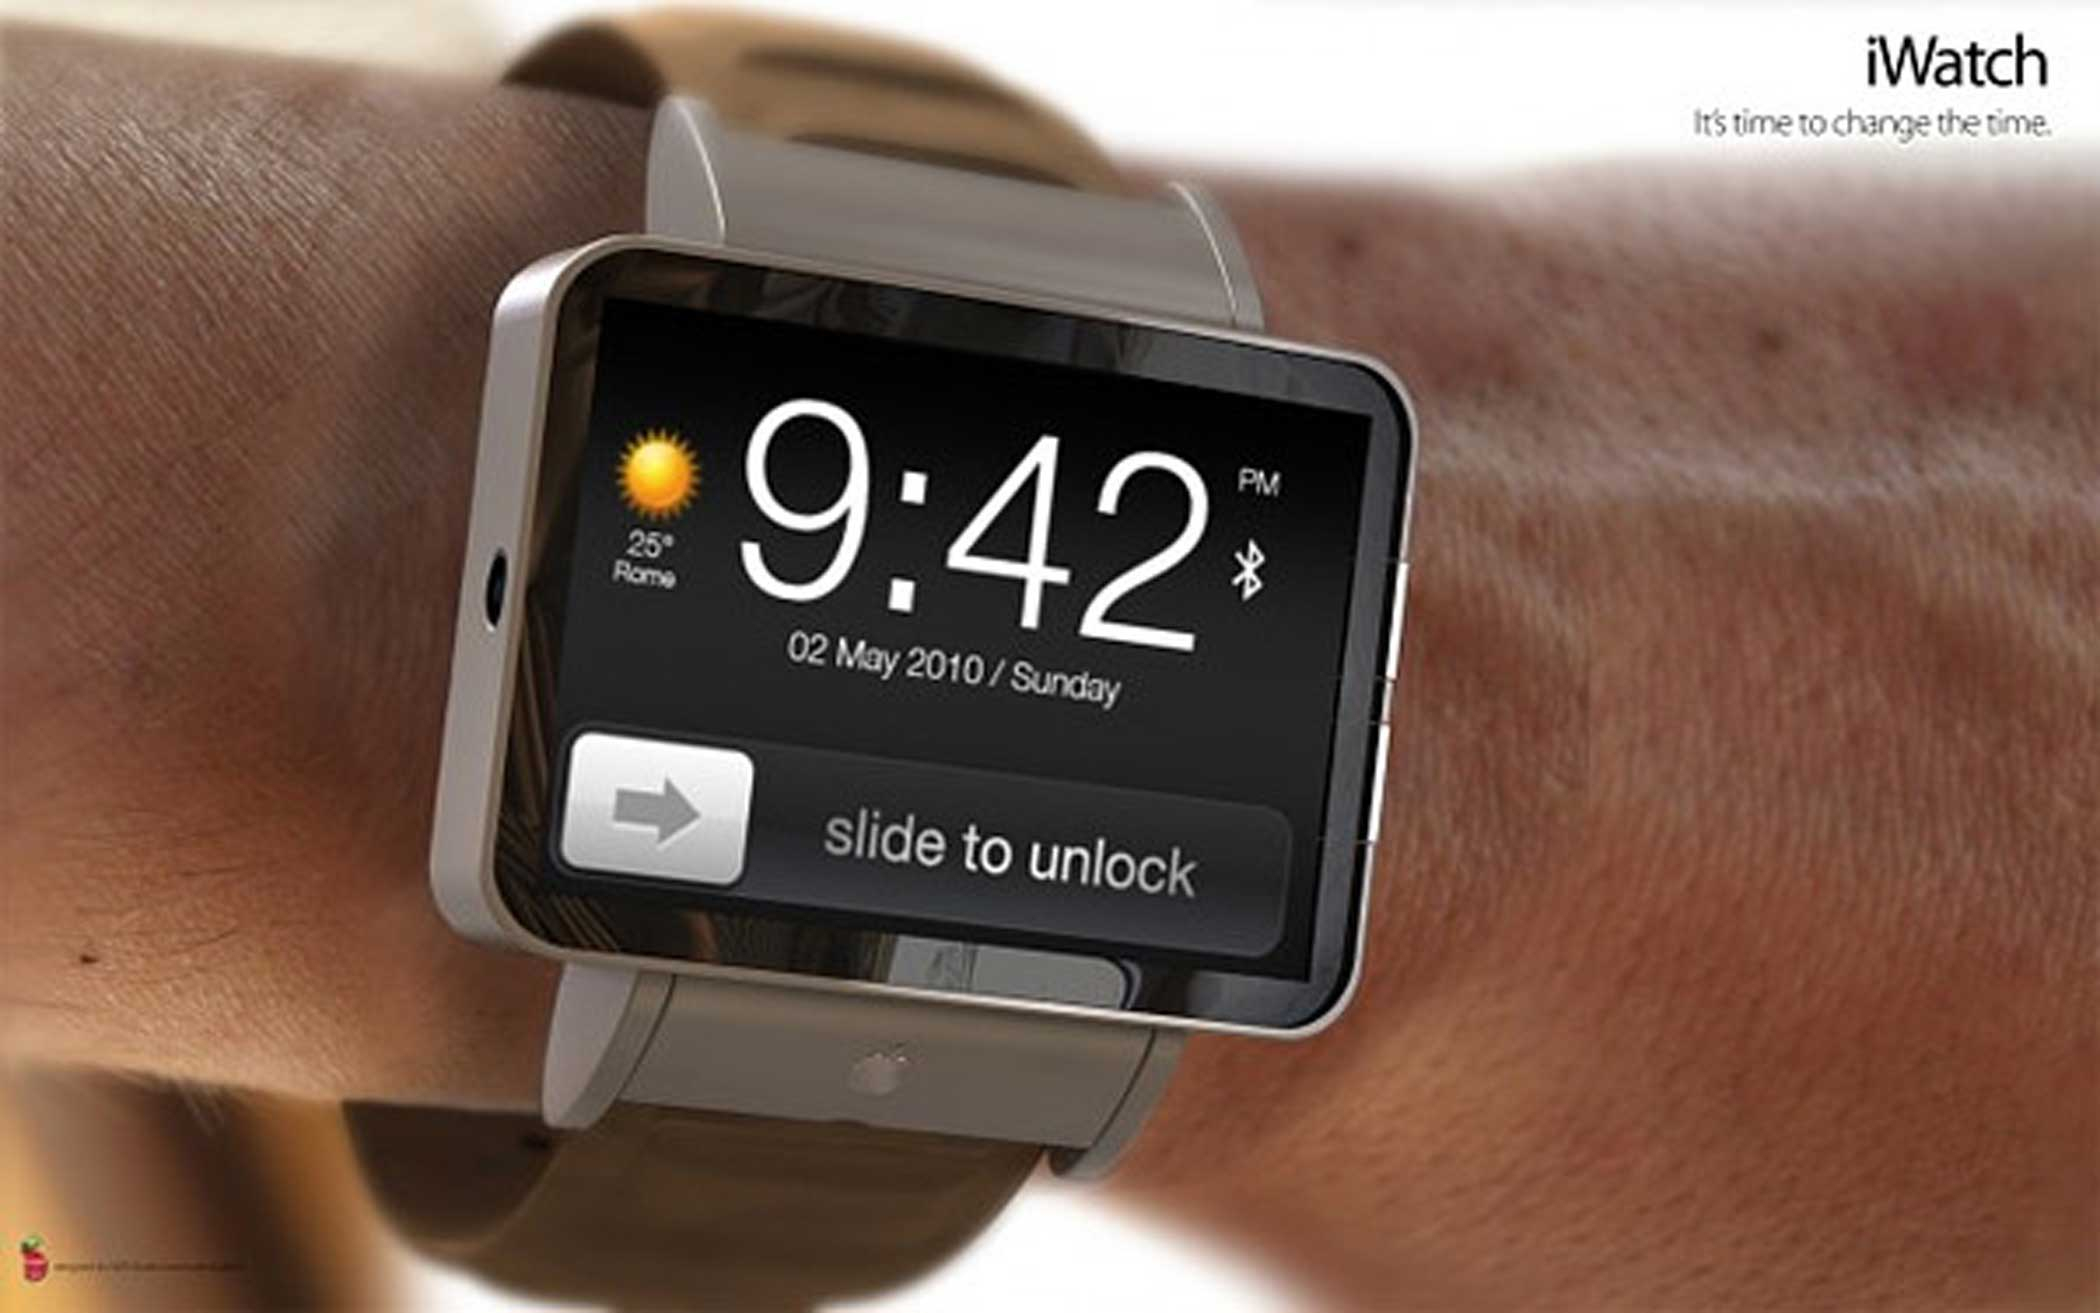 2010: iWatch Wristwatch Five years before the release of the Apple Watch, this concept put a modified iPhone display on a watch band.